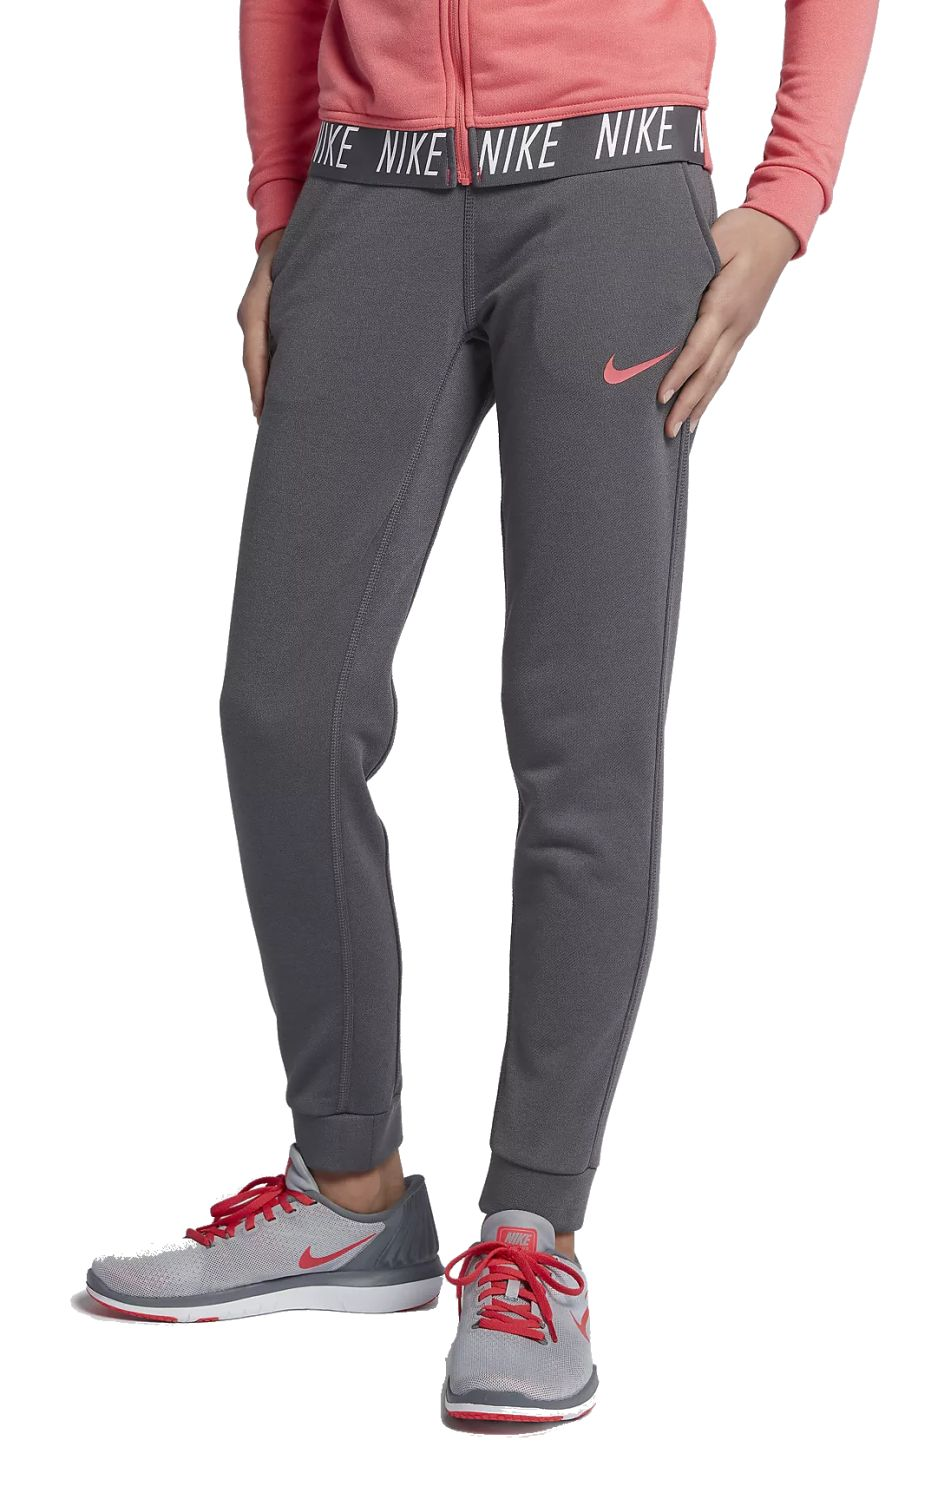 Core Grey Girls Nike Training Pants Pants CoraleBay Fit Dri Studio Pant Fitness oCBeQrdxW